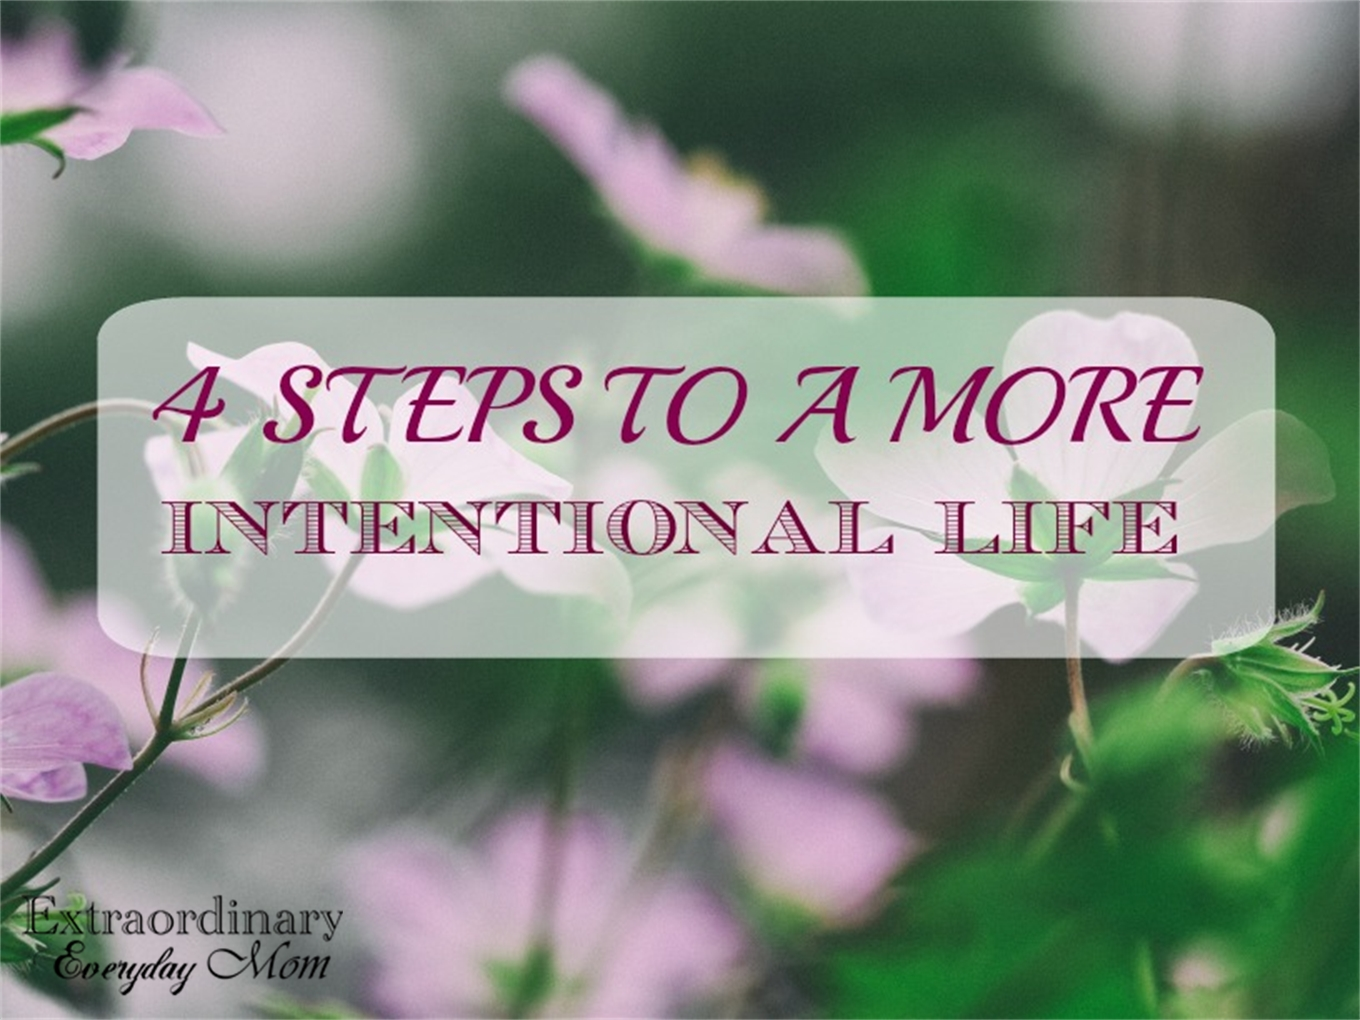 4 Steps to a More Intentional Life